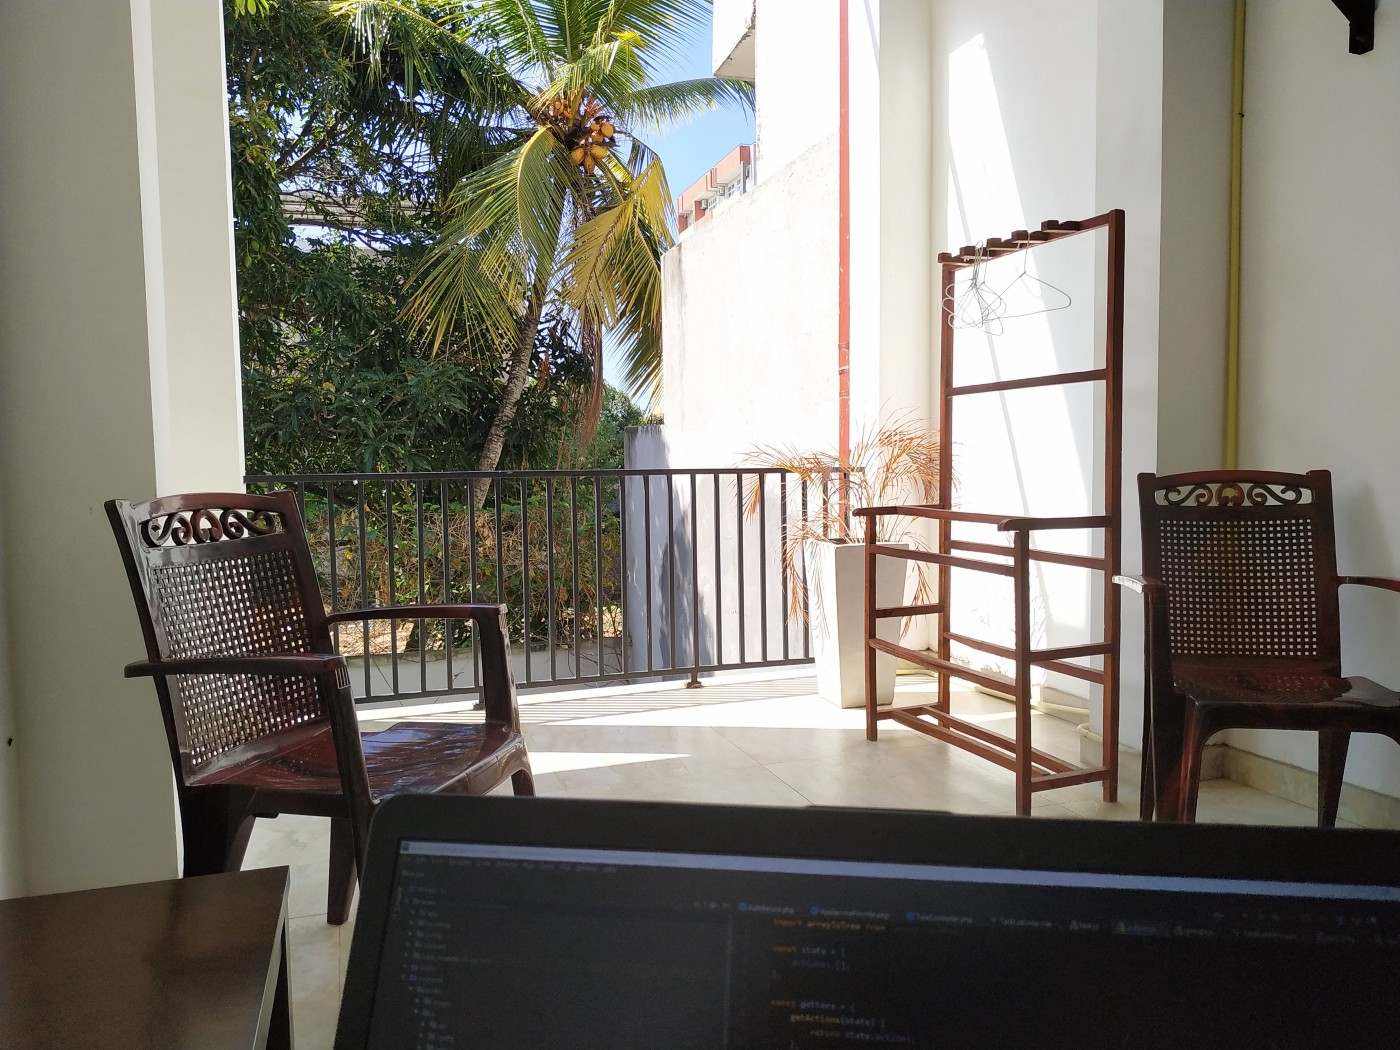 Laptop and palms. We all think it's going to be like that, right?:-)